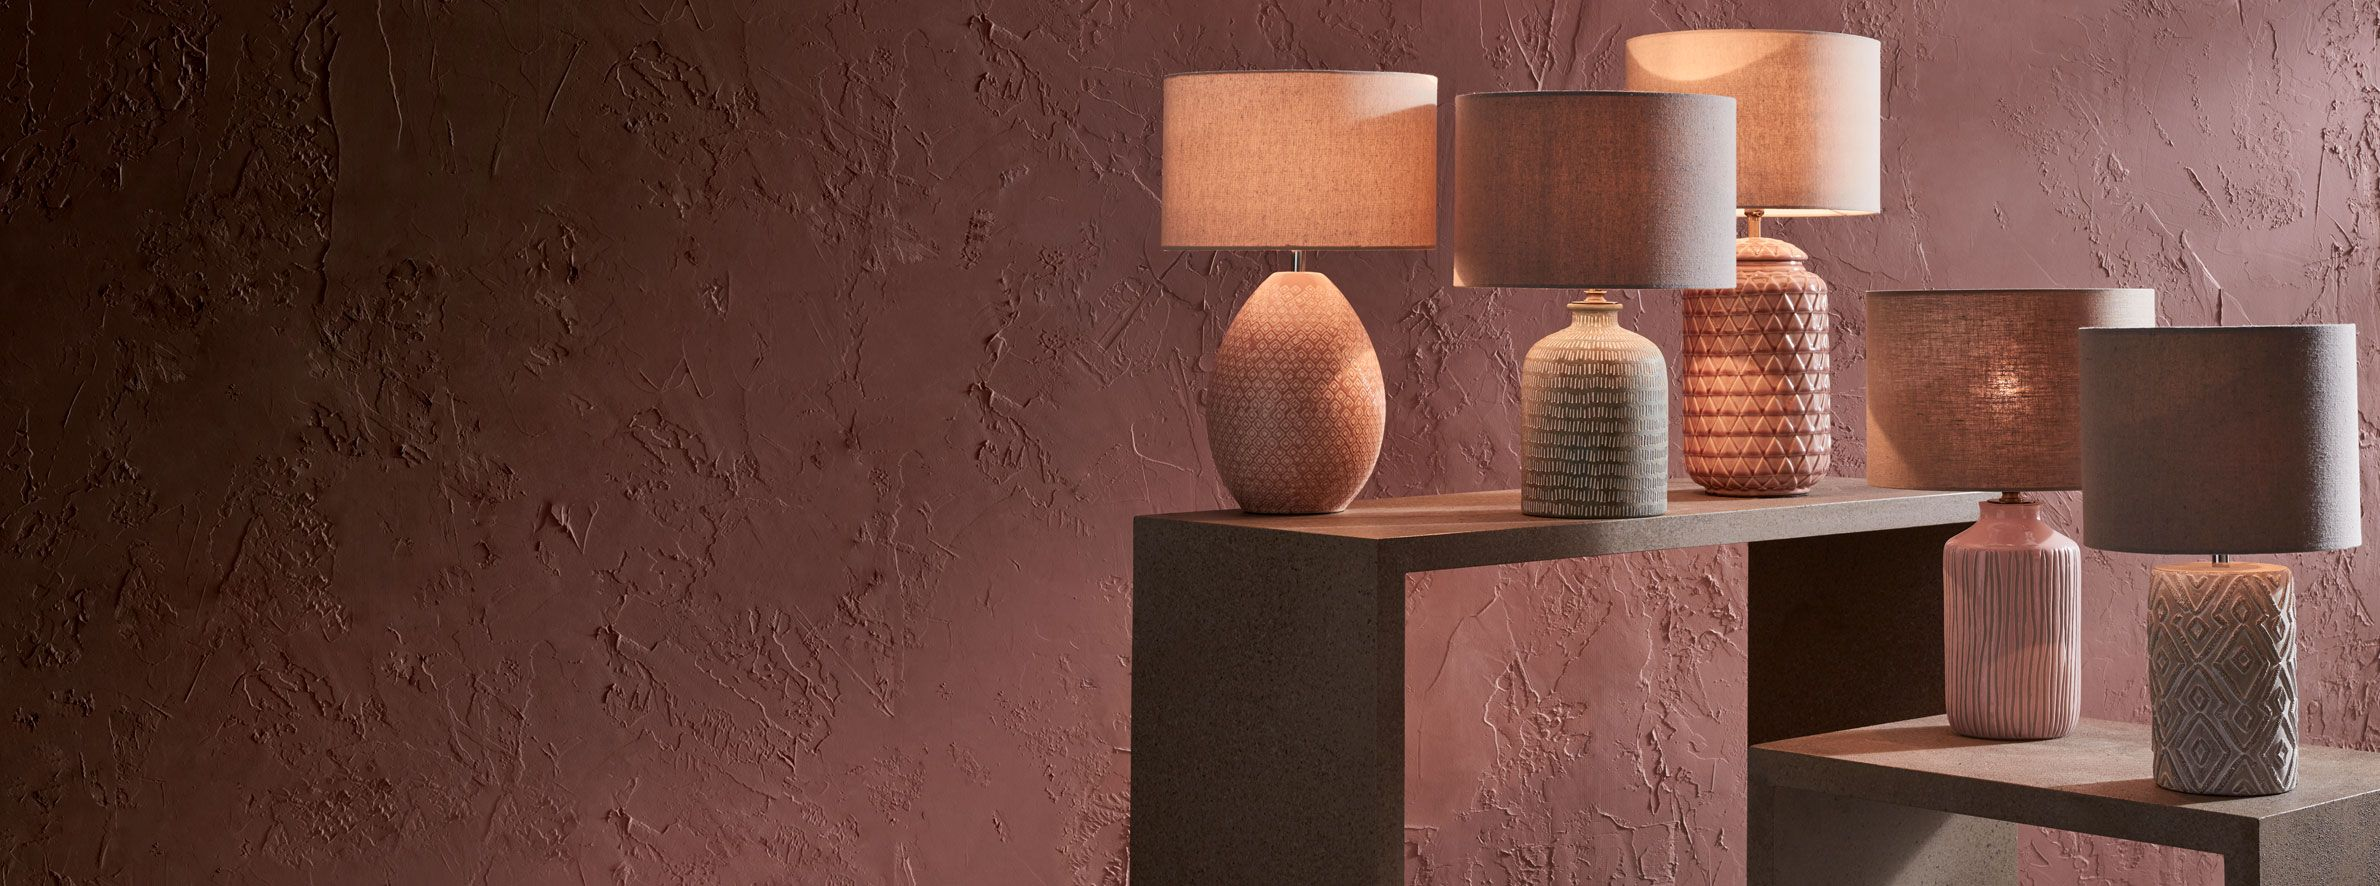 Table lamps shop for bedside and side table lamps at for Daylight floor lamp john lewis